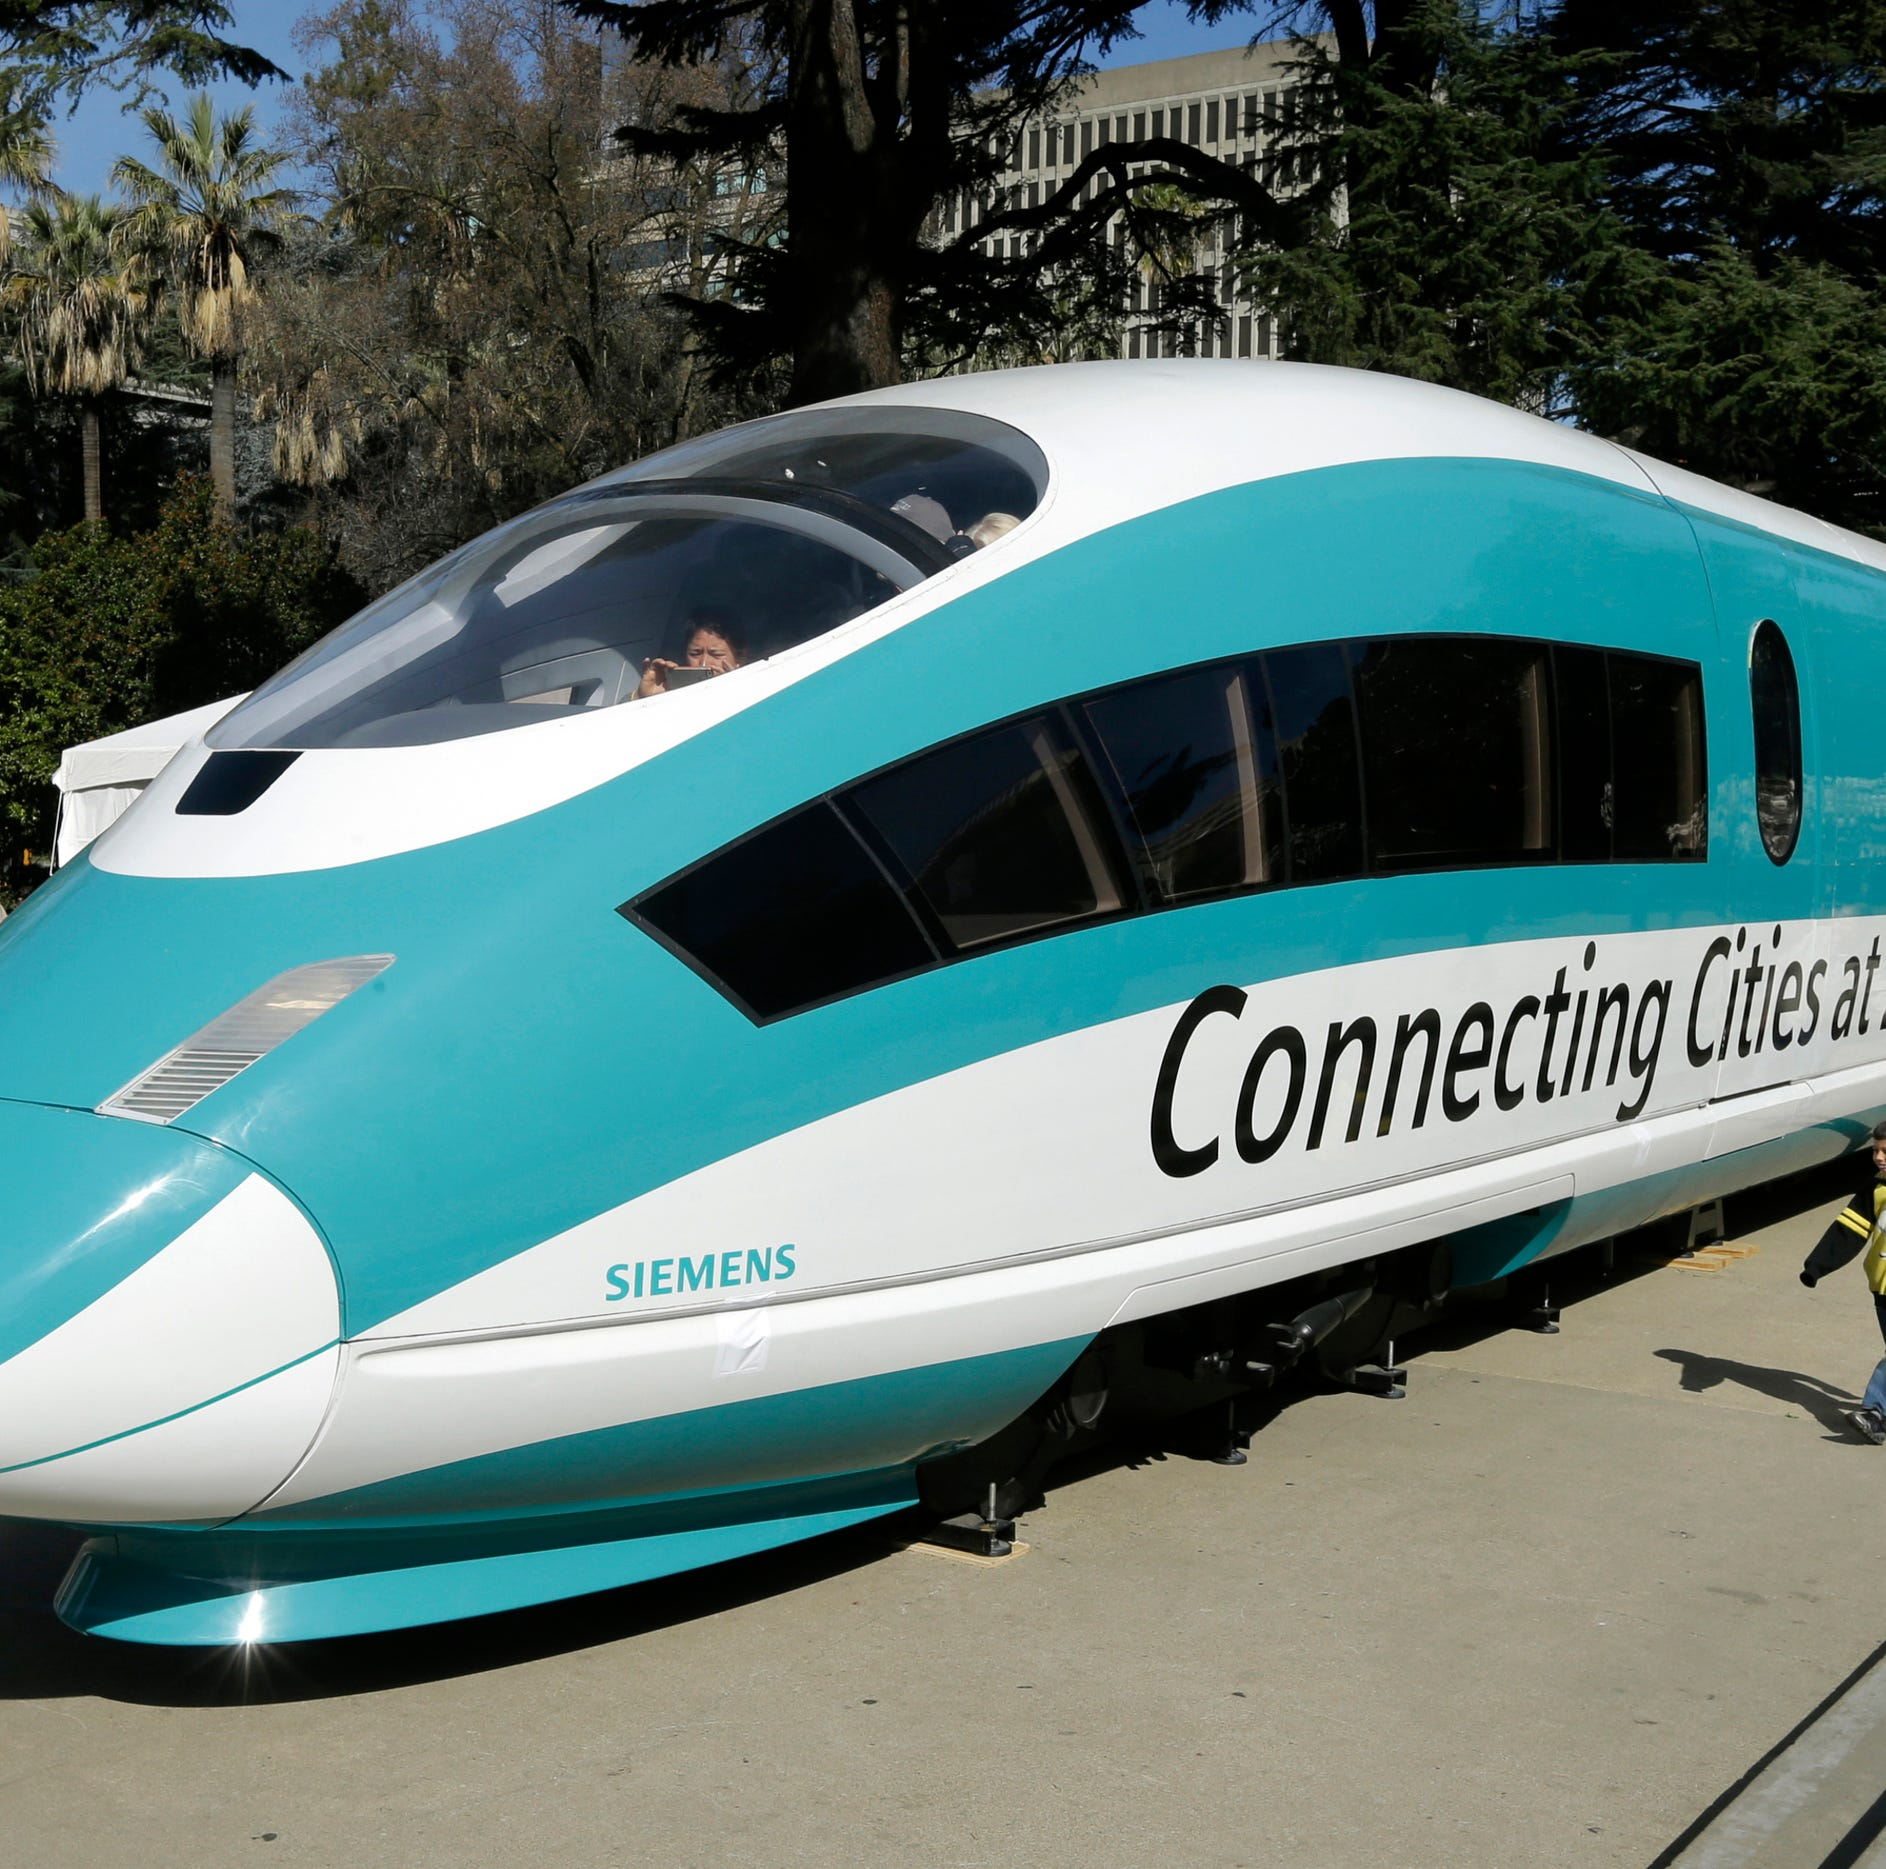 California sues over $1B in canceled high-speed rail funding, escalating feud with Trump administration